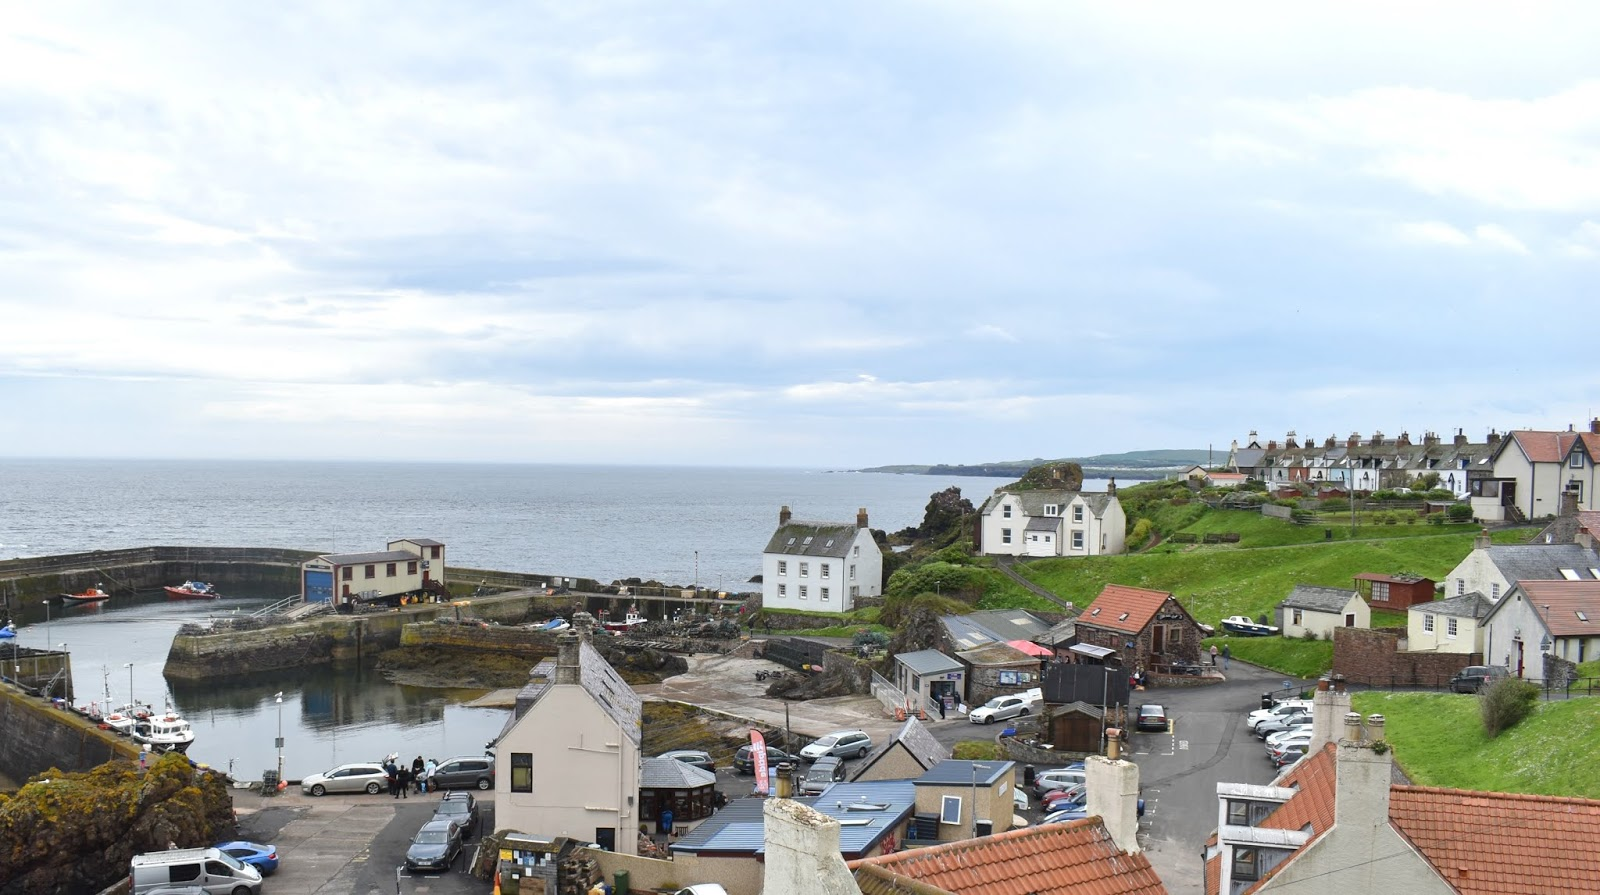 Avengers - Exploring St Abbs and New Asgard